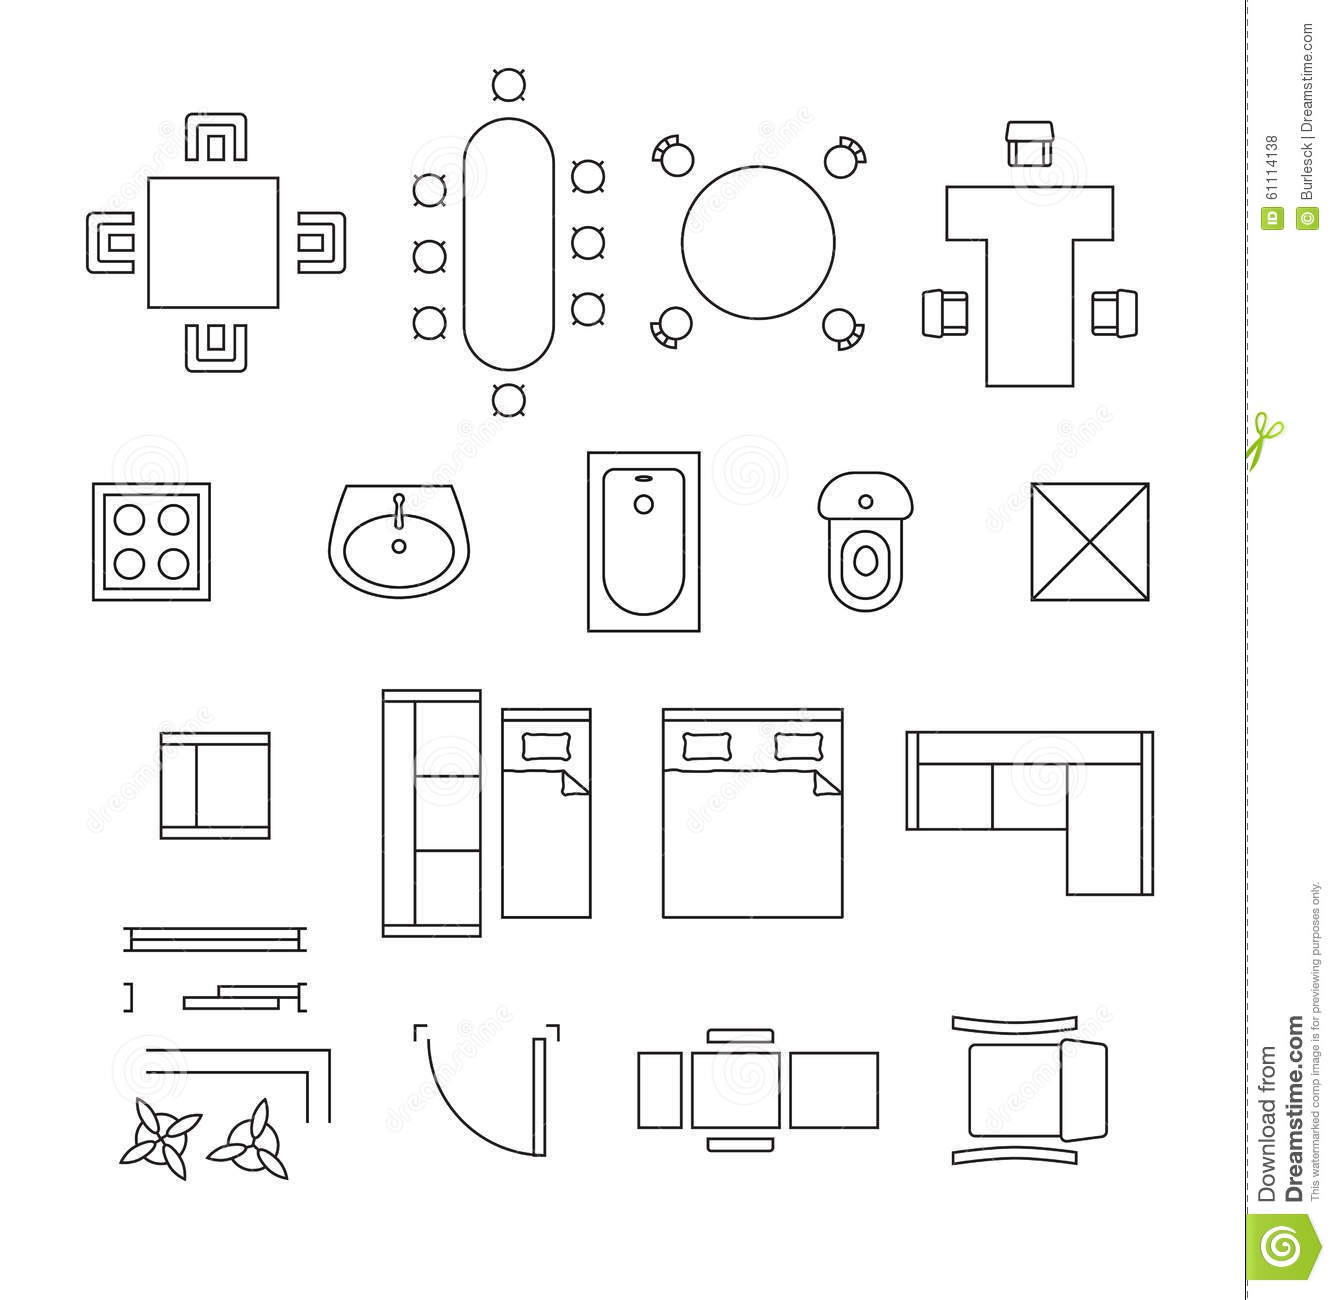 Clip art floor plan symbols clipground for Floor plan furniture planner